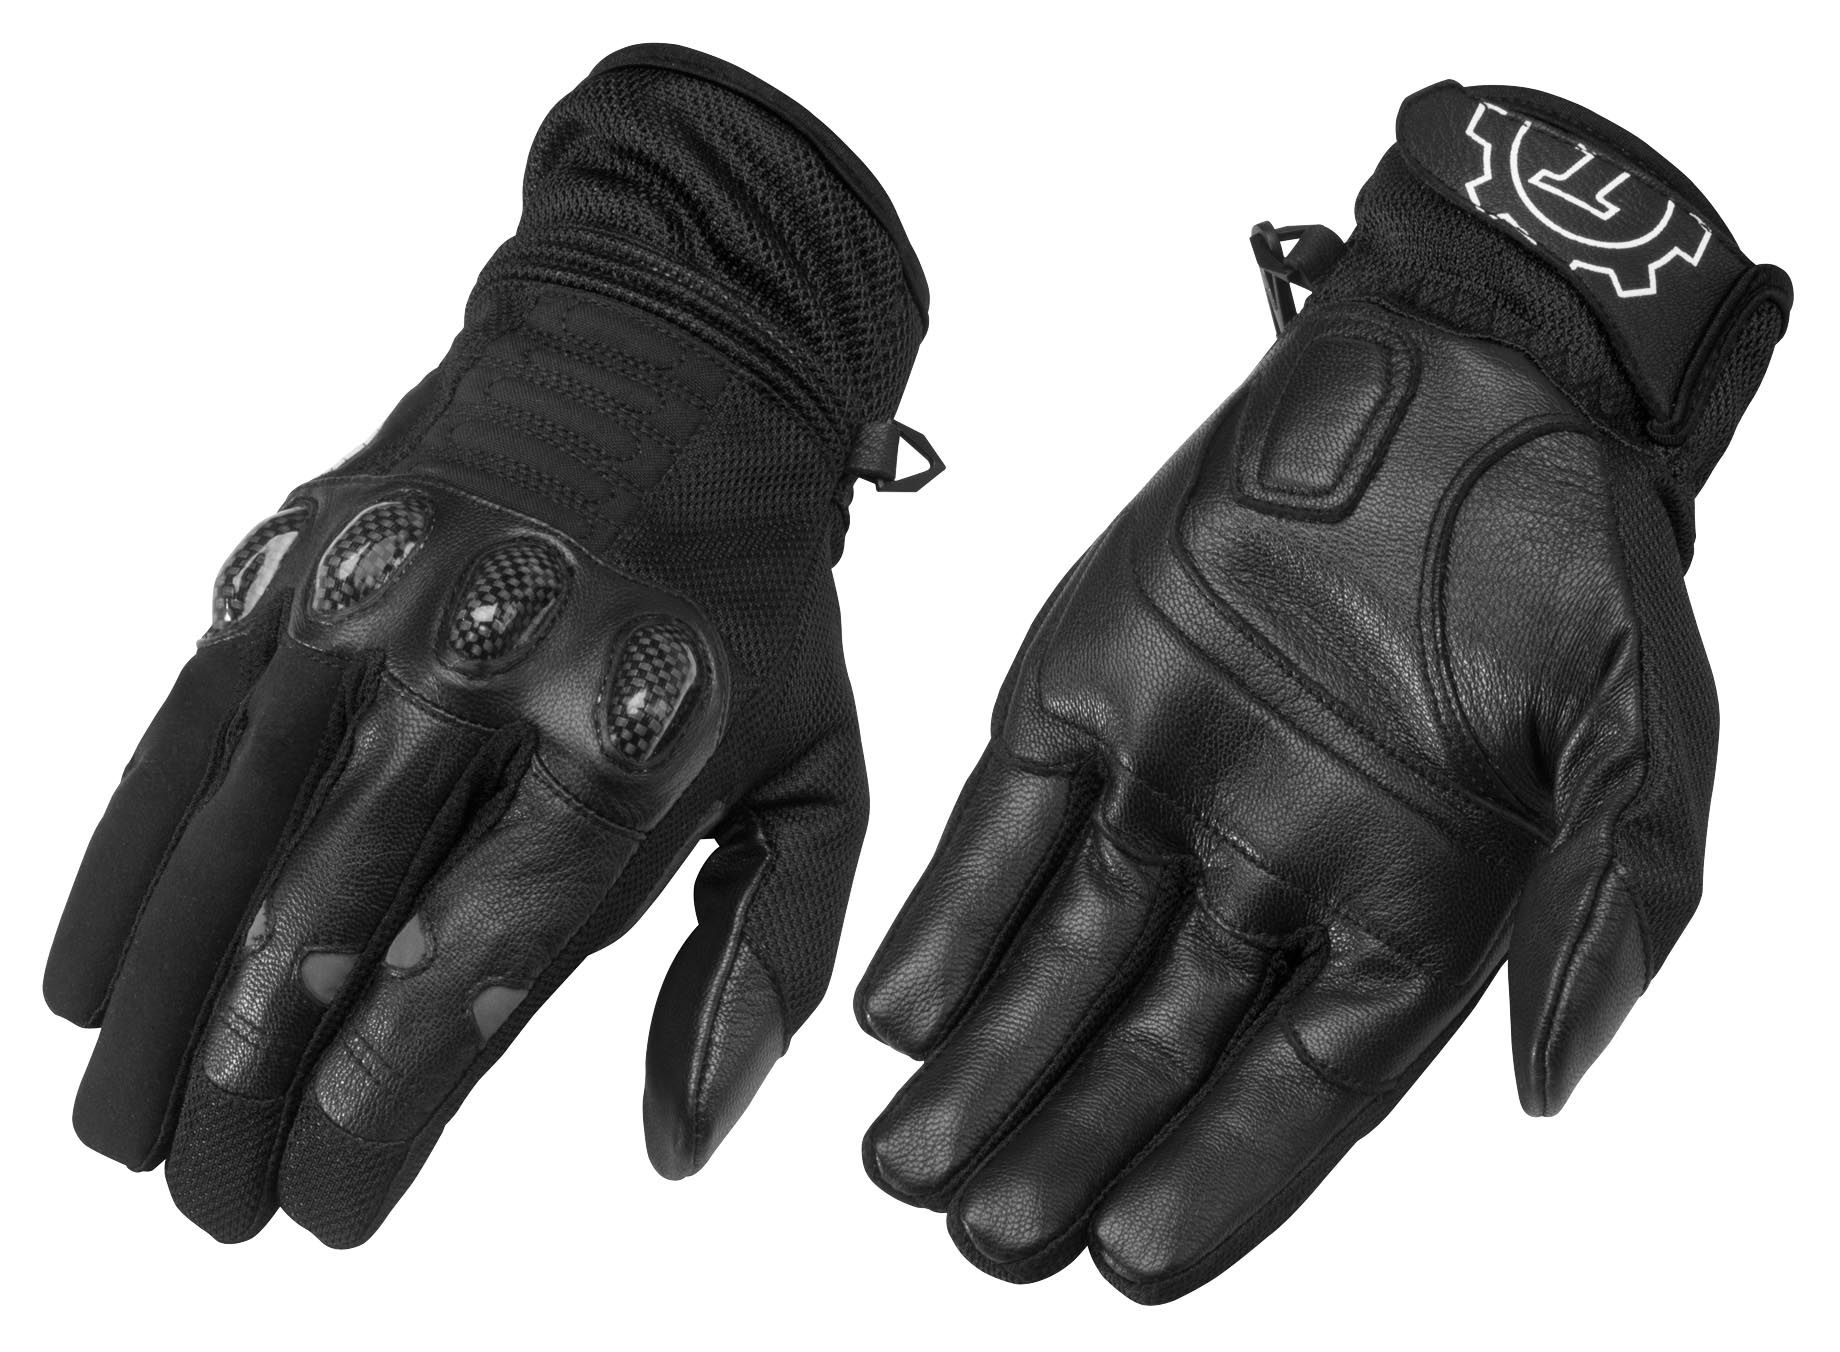 Motorcycle gloves mesh - Motorcycle Gloves Mesh 2